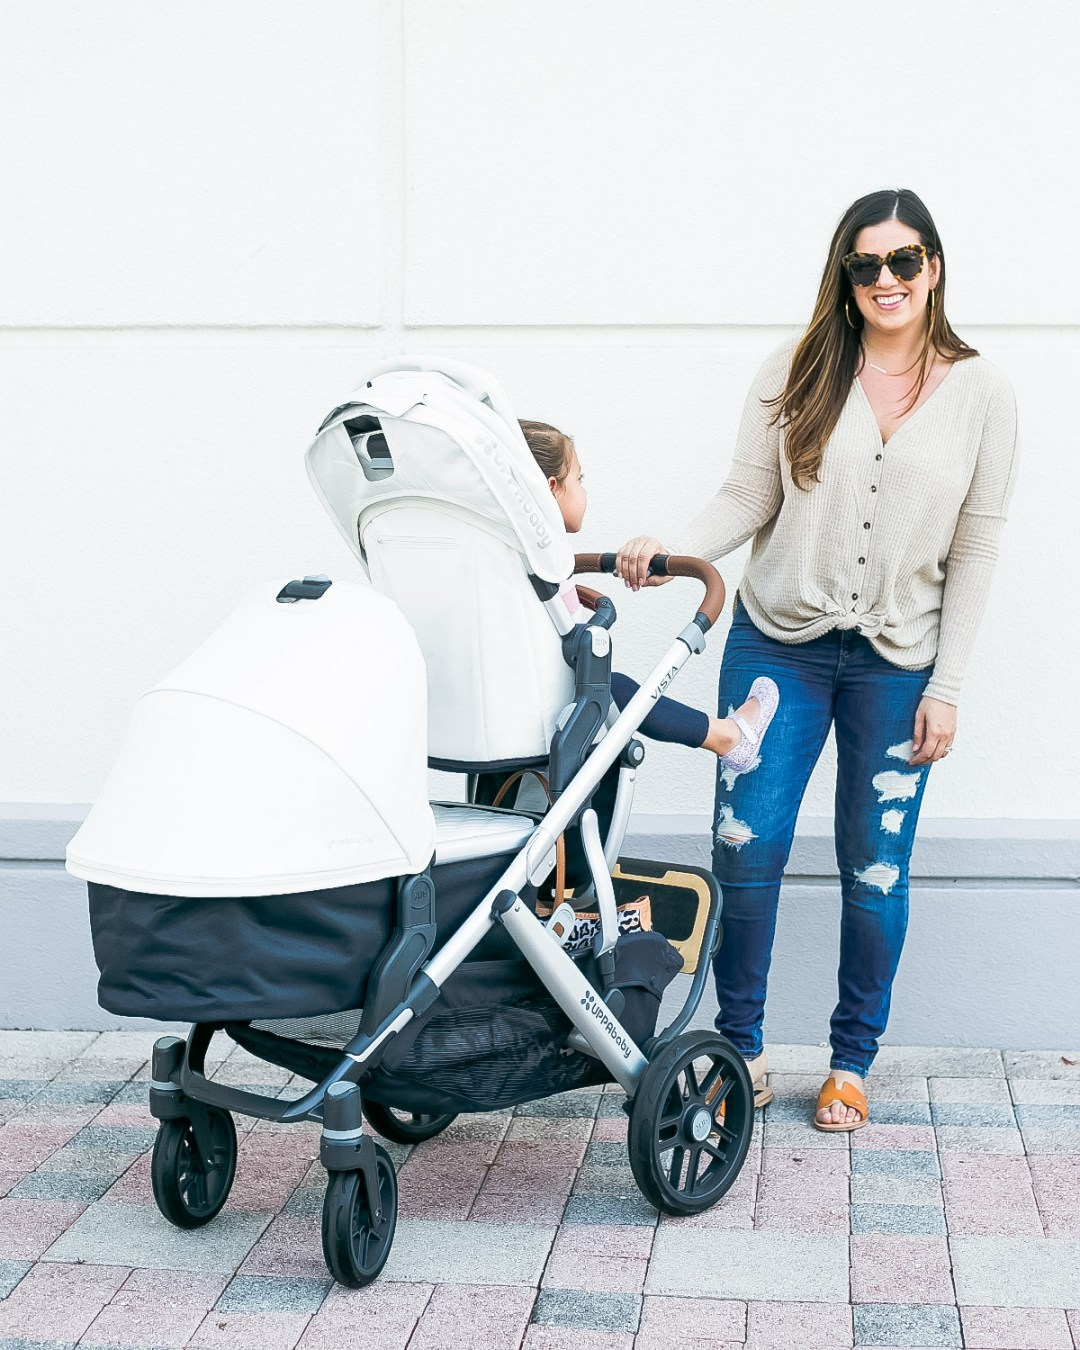 UPPAbaby Vista stroller review by Jaime Cittadino of Sunflowers and Stilettos